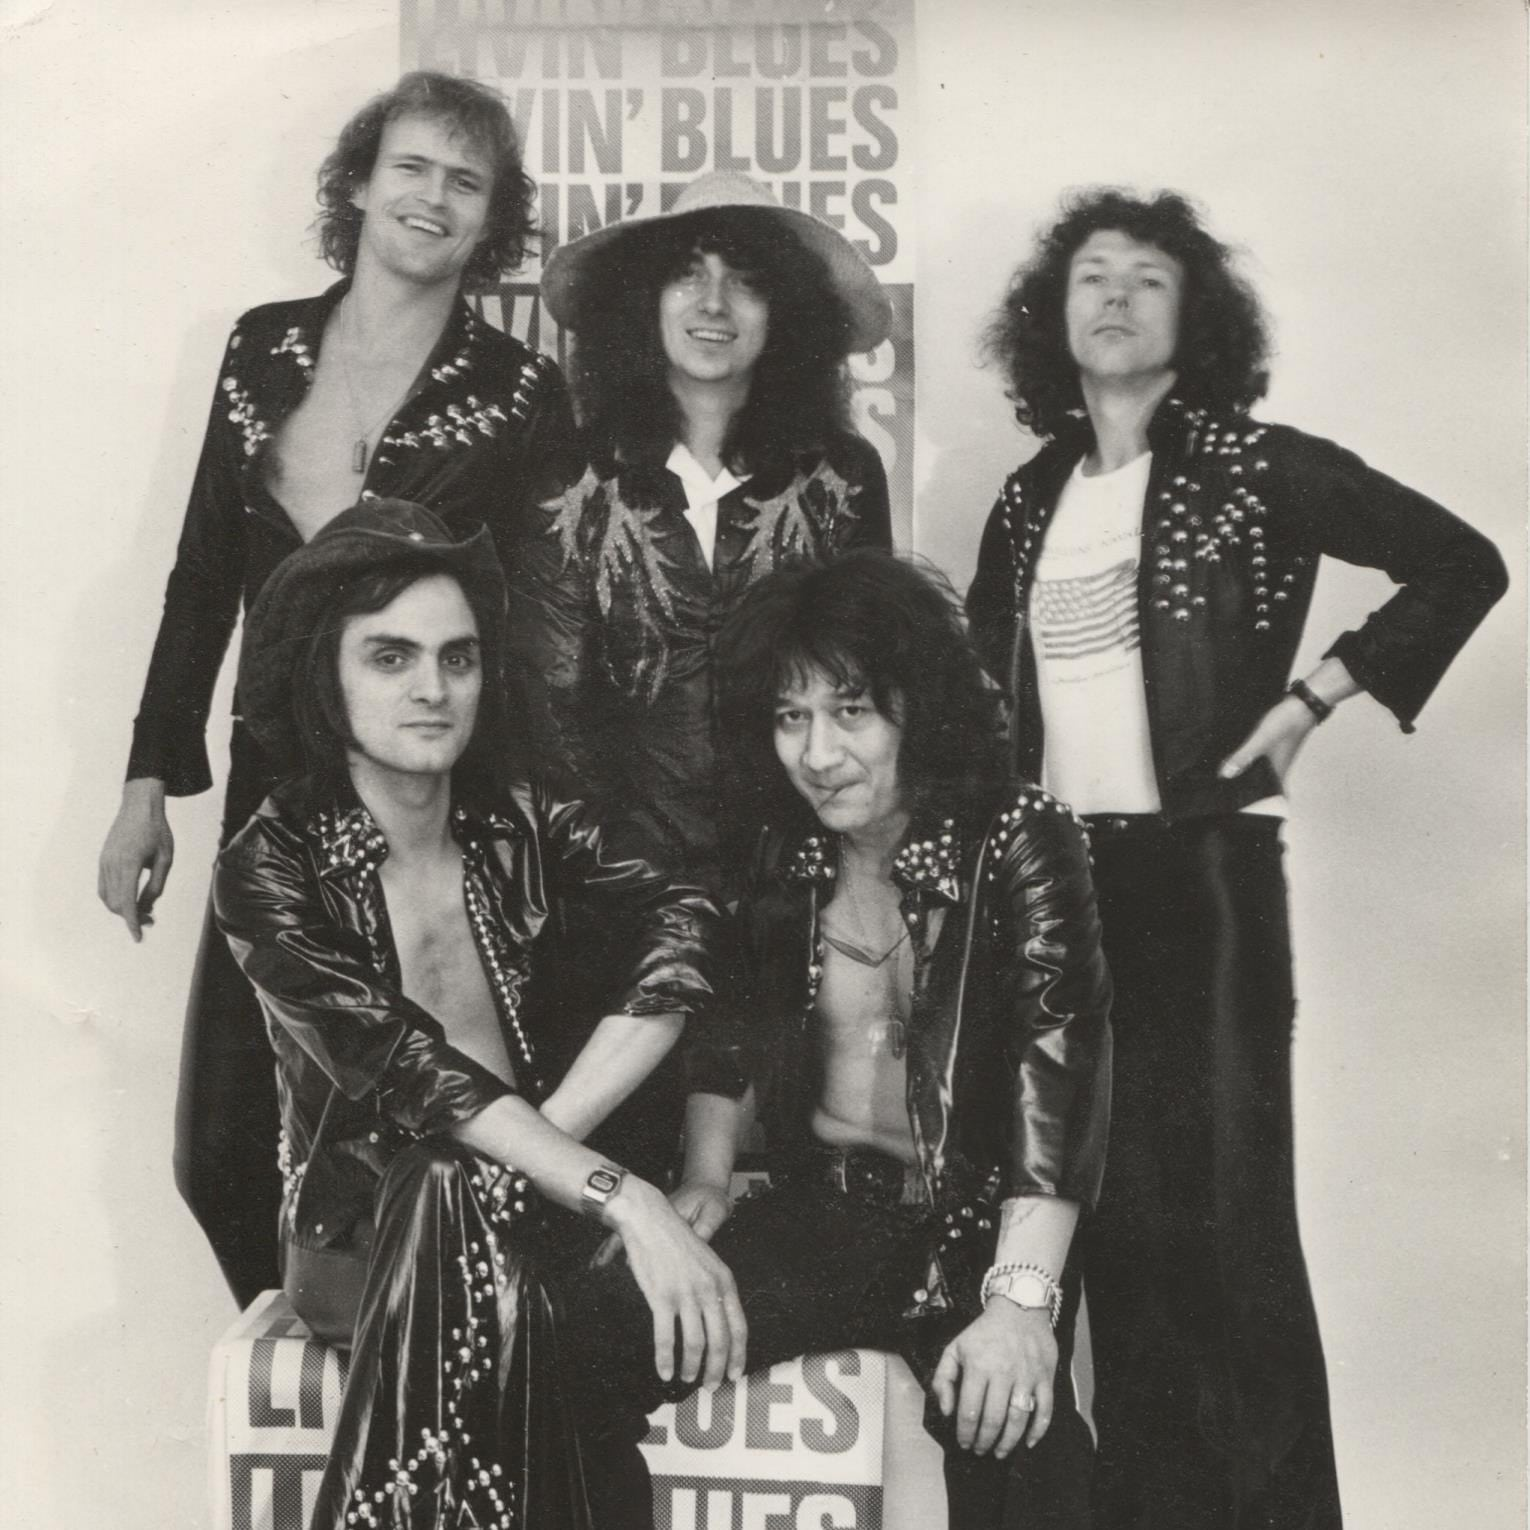 Photo Livin' Blues - 1979